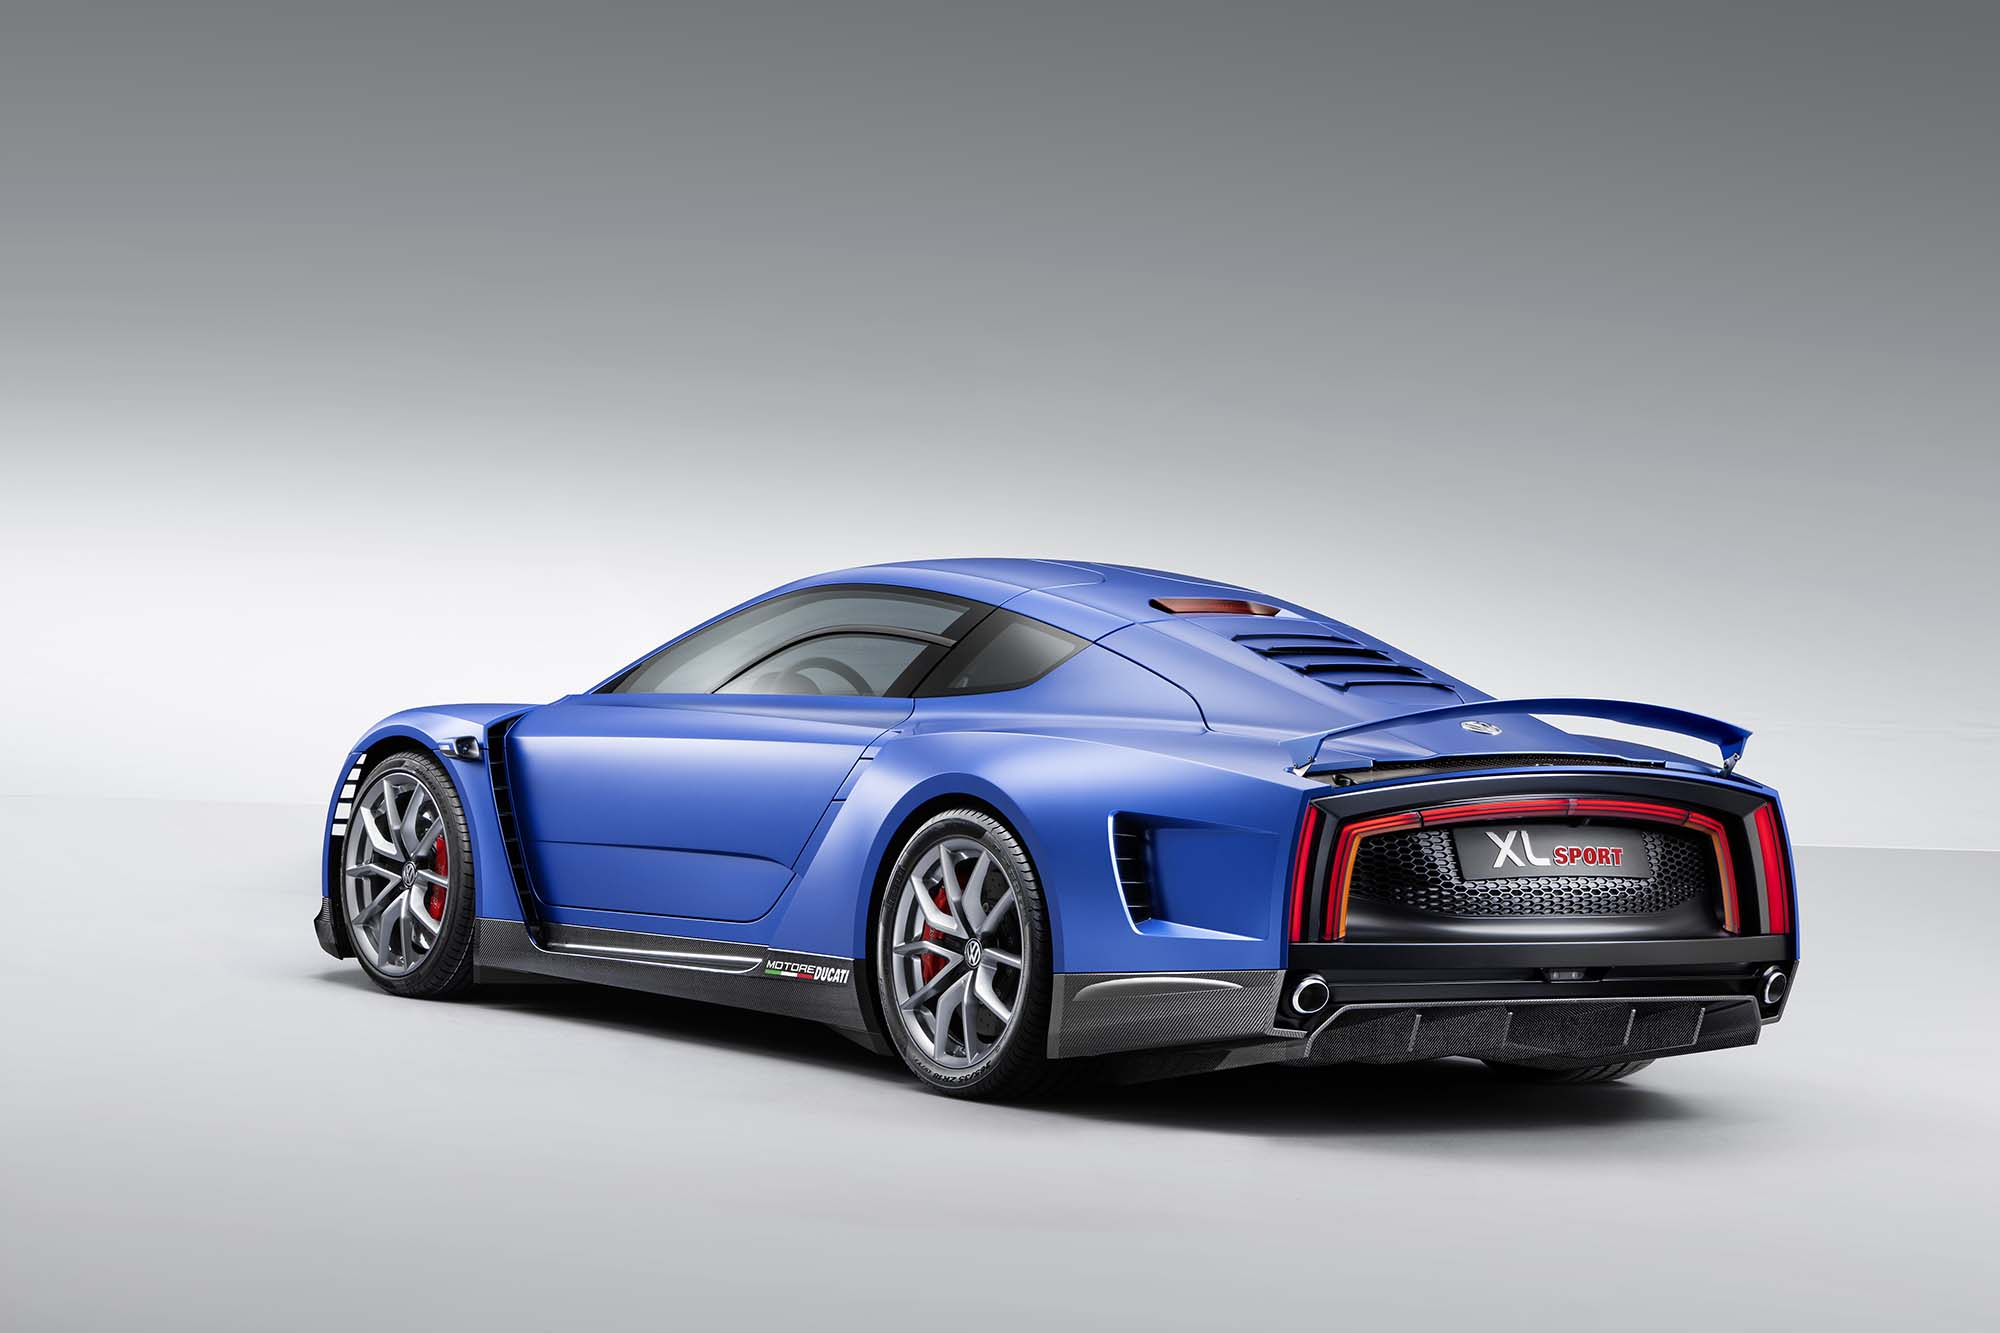 Volkswagen Xl Sport A Ducati Superleggera Powered Car Asphalt